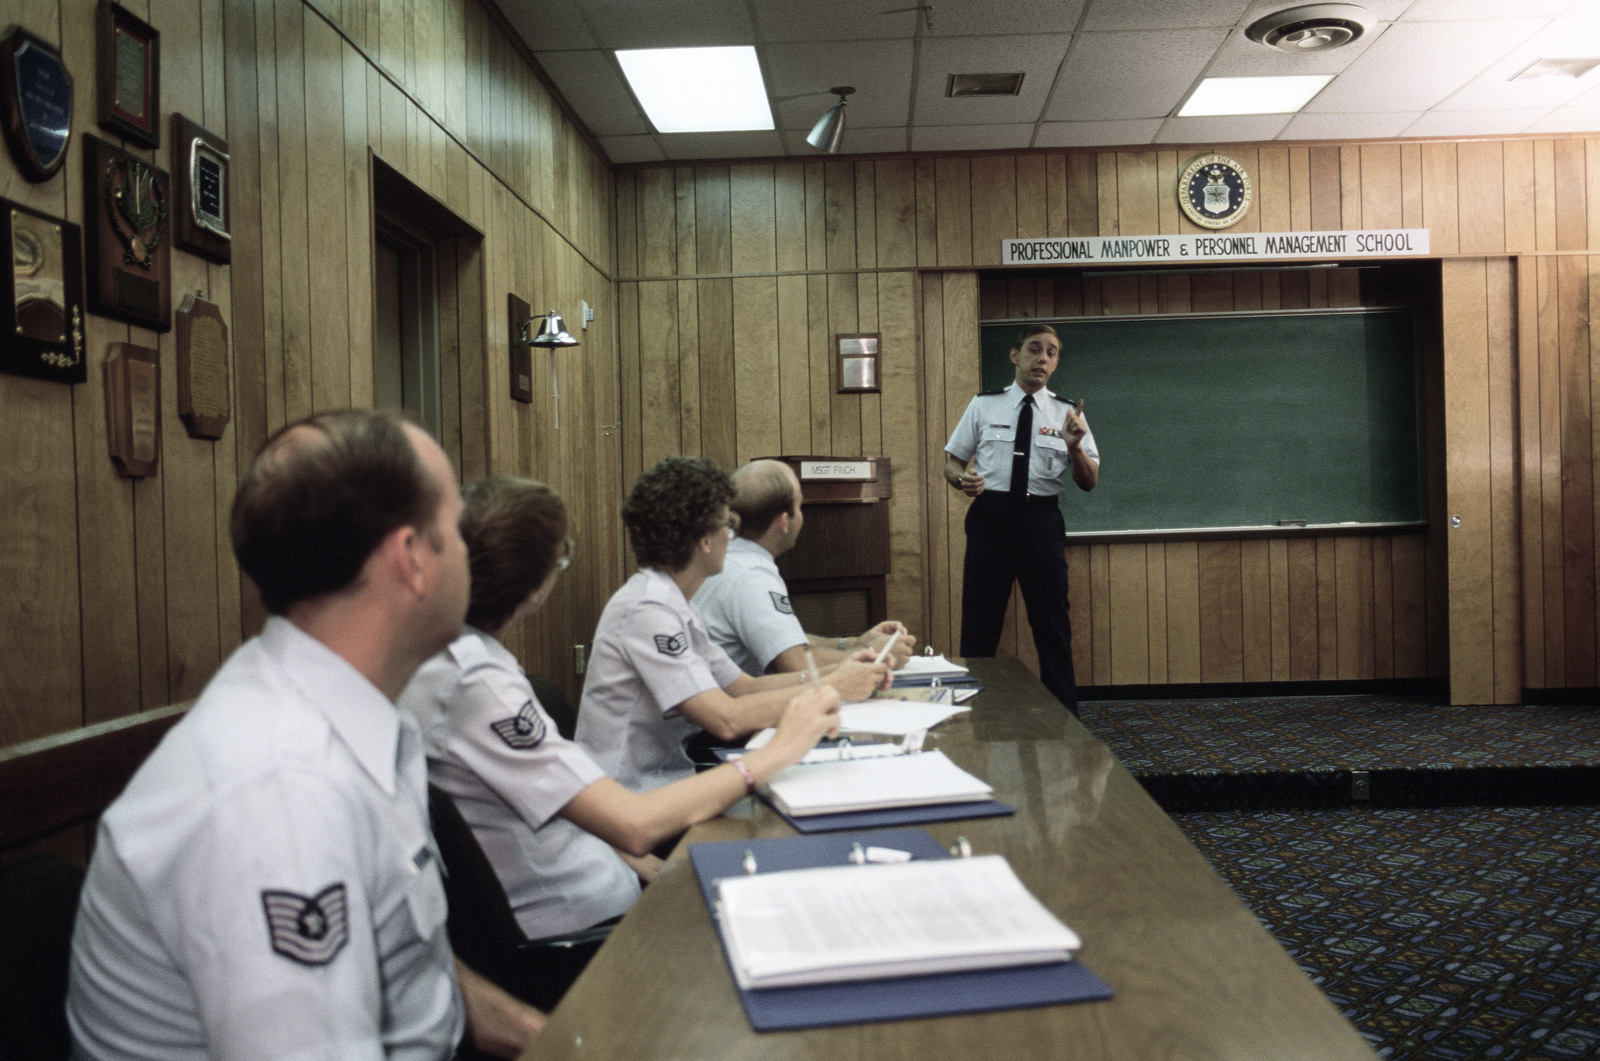 An instructor teaches public speaking to students at Air University.  The university offers formal training in many areas of military studies to officers and senior non-commissioned officers in the Air Force